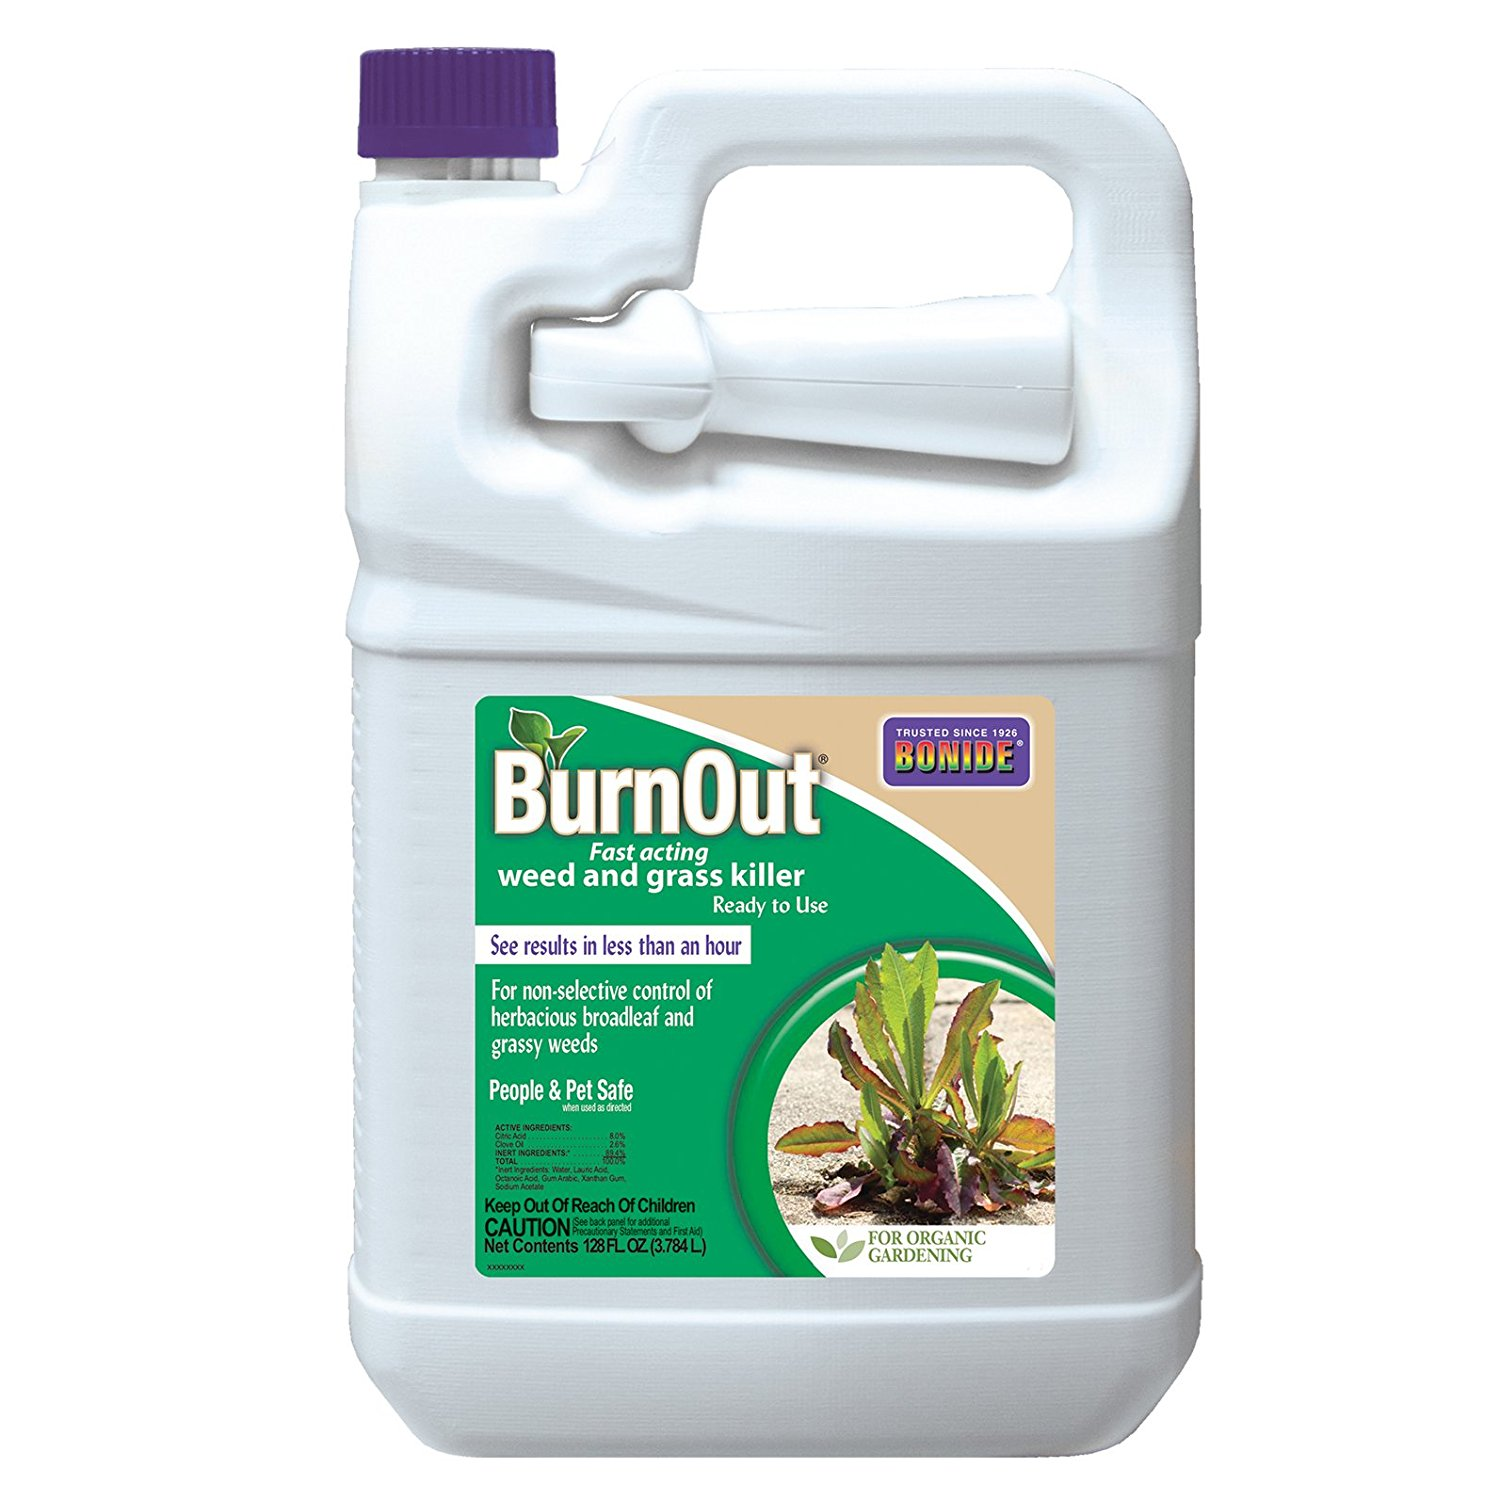 Products 7492 Burnout, Ready To Use, All Natural Weed & Grass Killer, Very fast acting By Bonide,USA